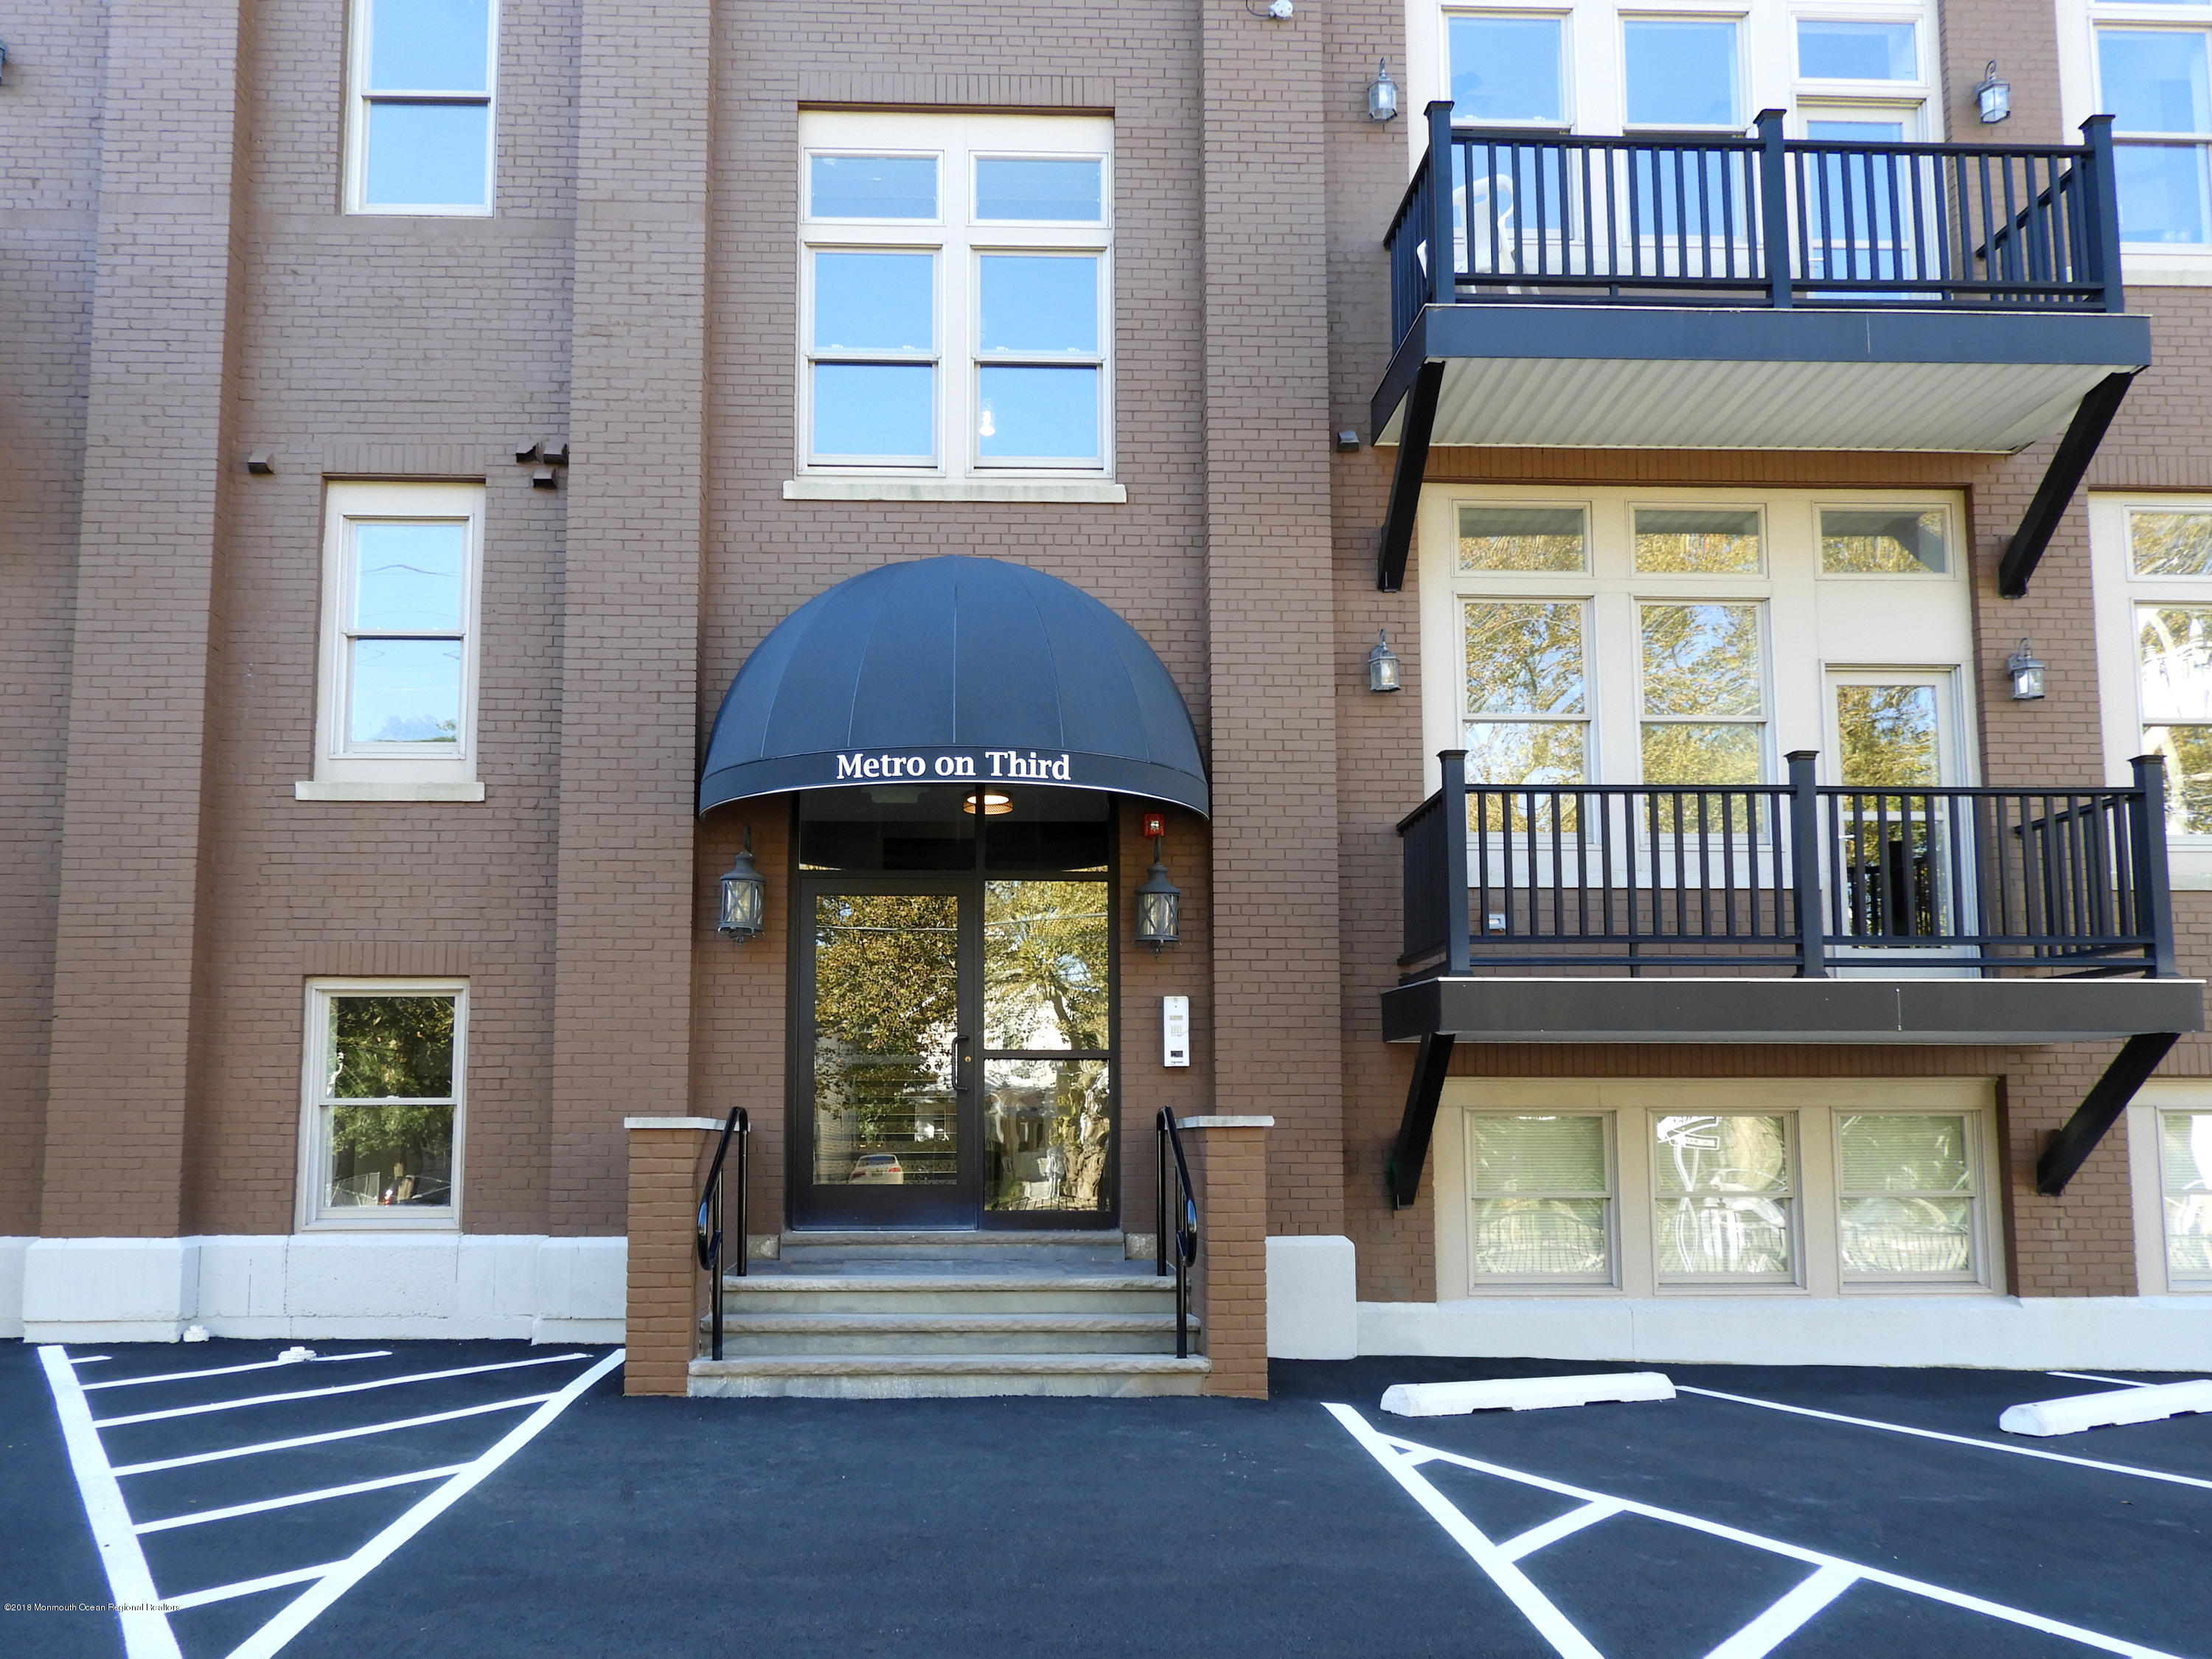 Come check out the newest rental addition to Asbury Park.  The Metro on 3rd was once the Holy Spirit school now converted to brand new condos with washer and dyers in unit and parking space included